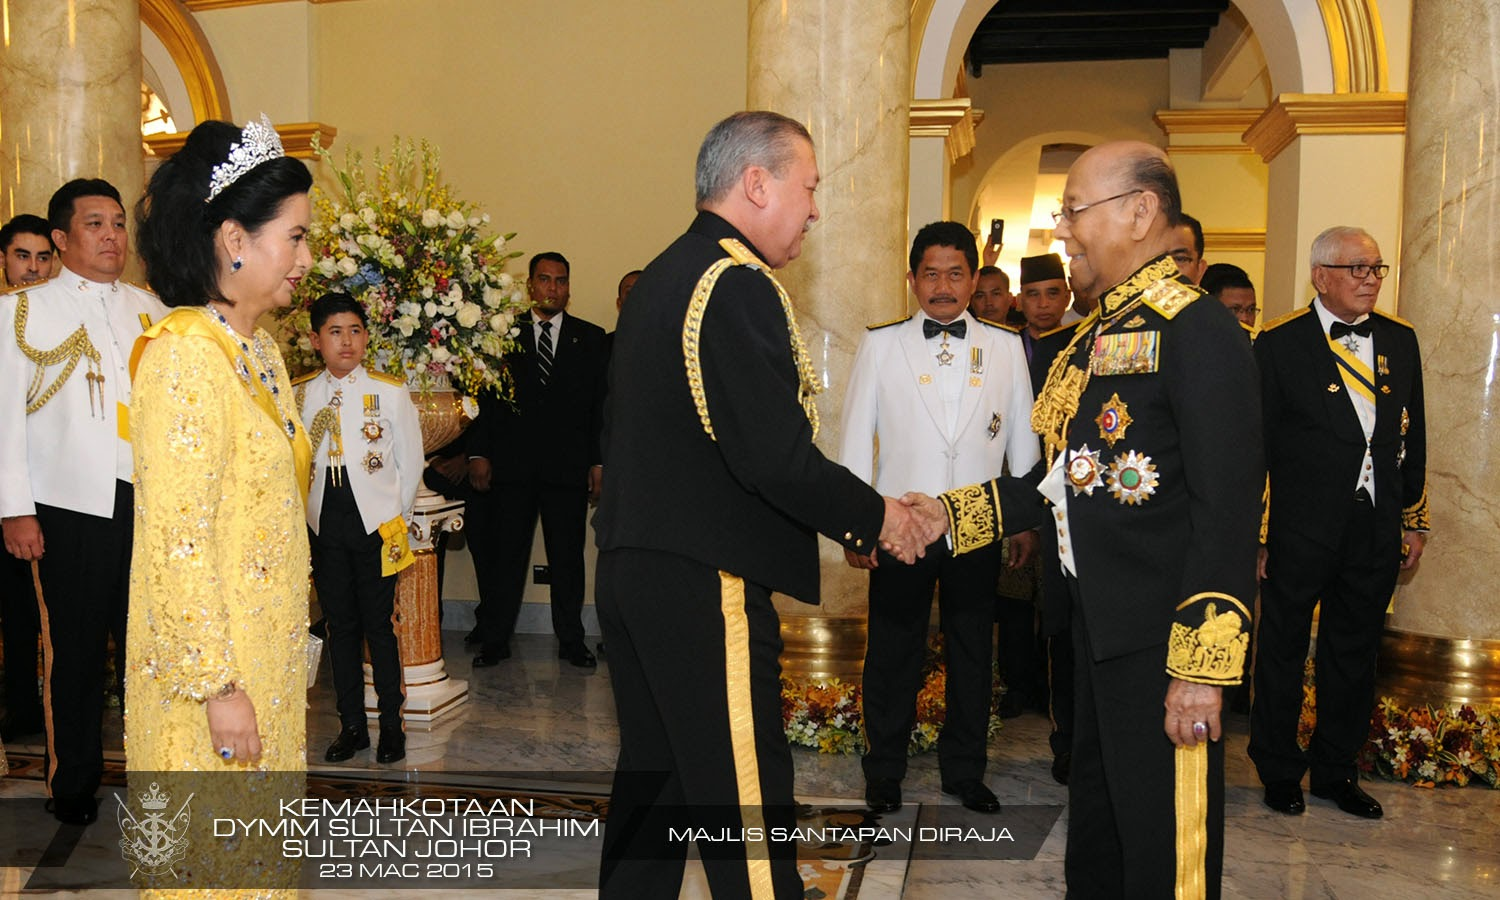 malaysian royalty the coronation of the sultan of johor